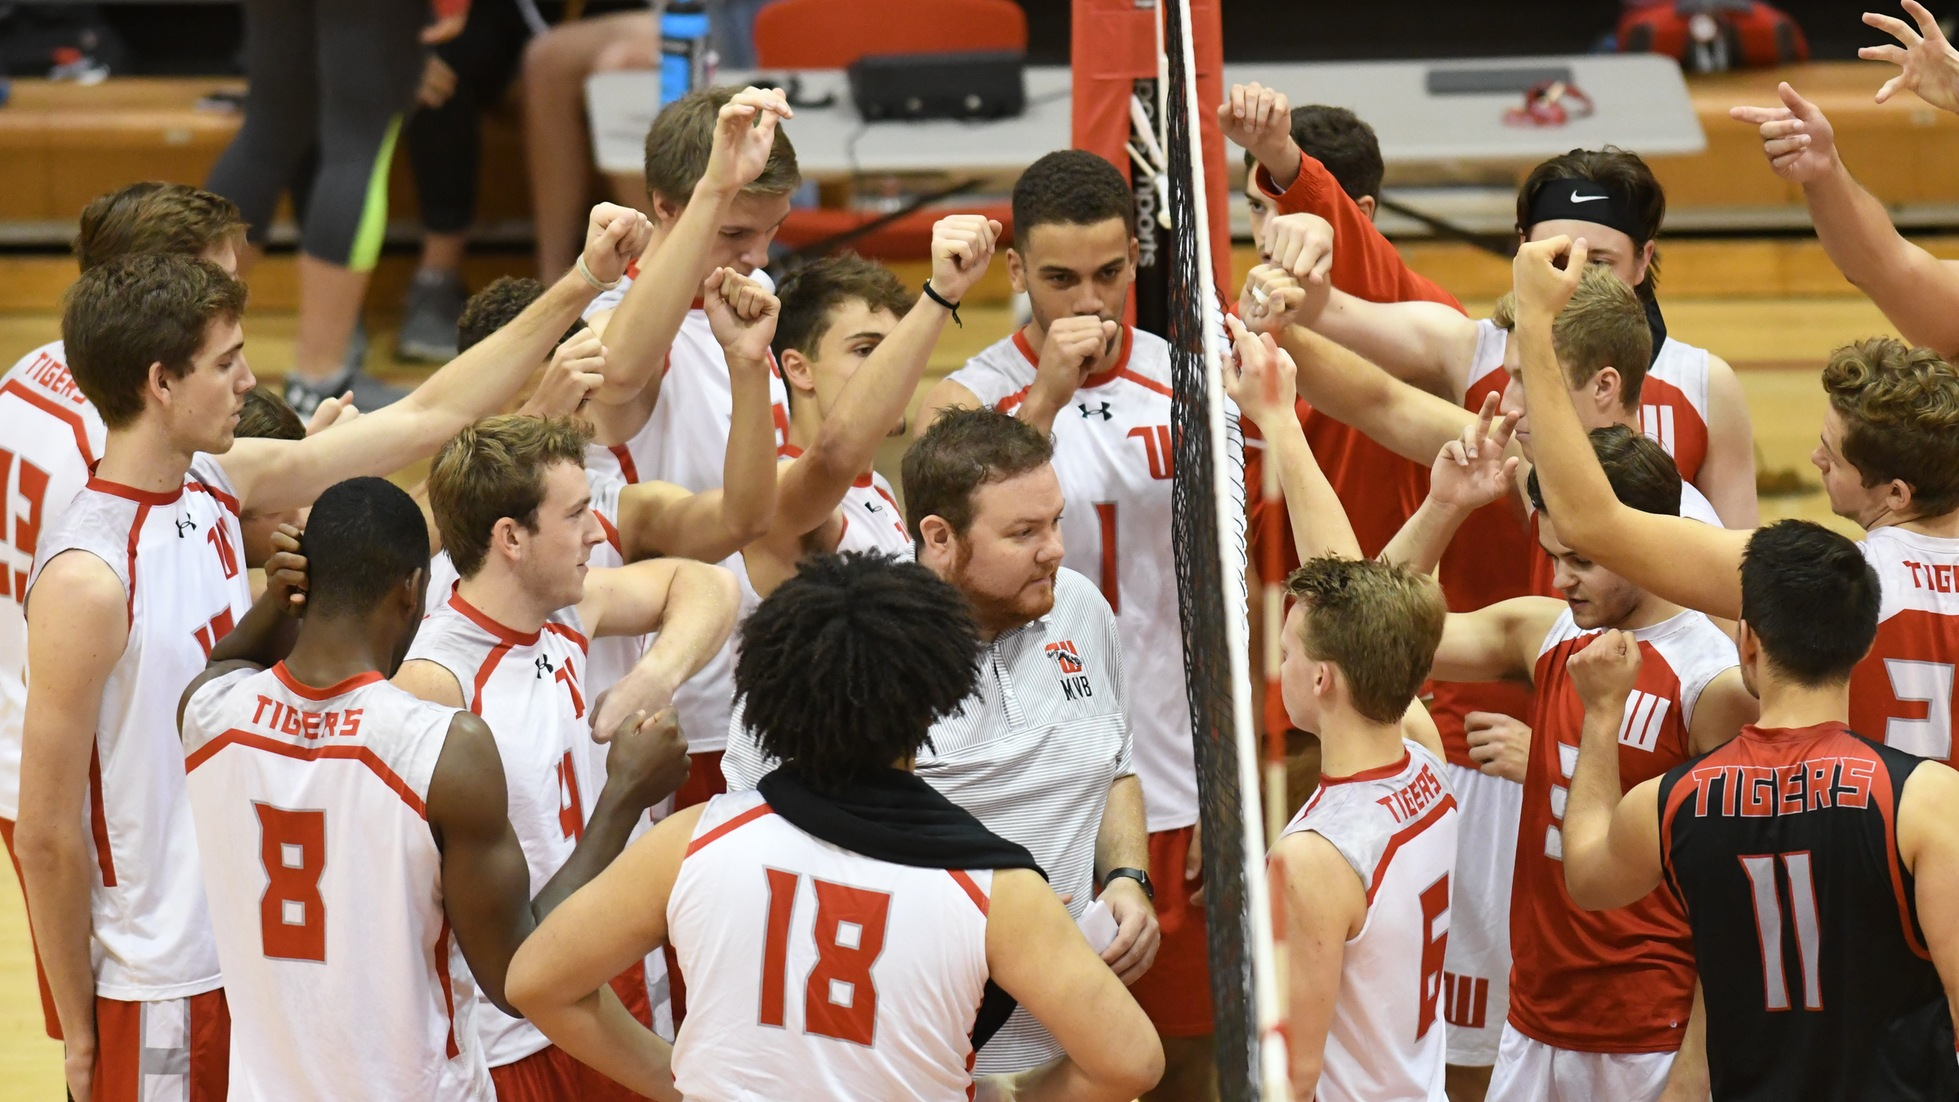 Men's Volleyball Splits Day With Fontbonne & Hiram